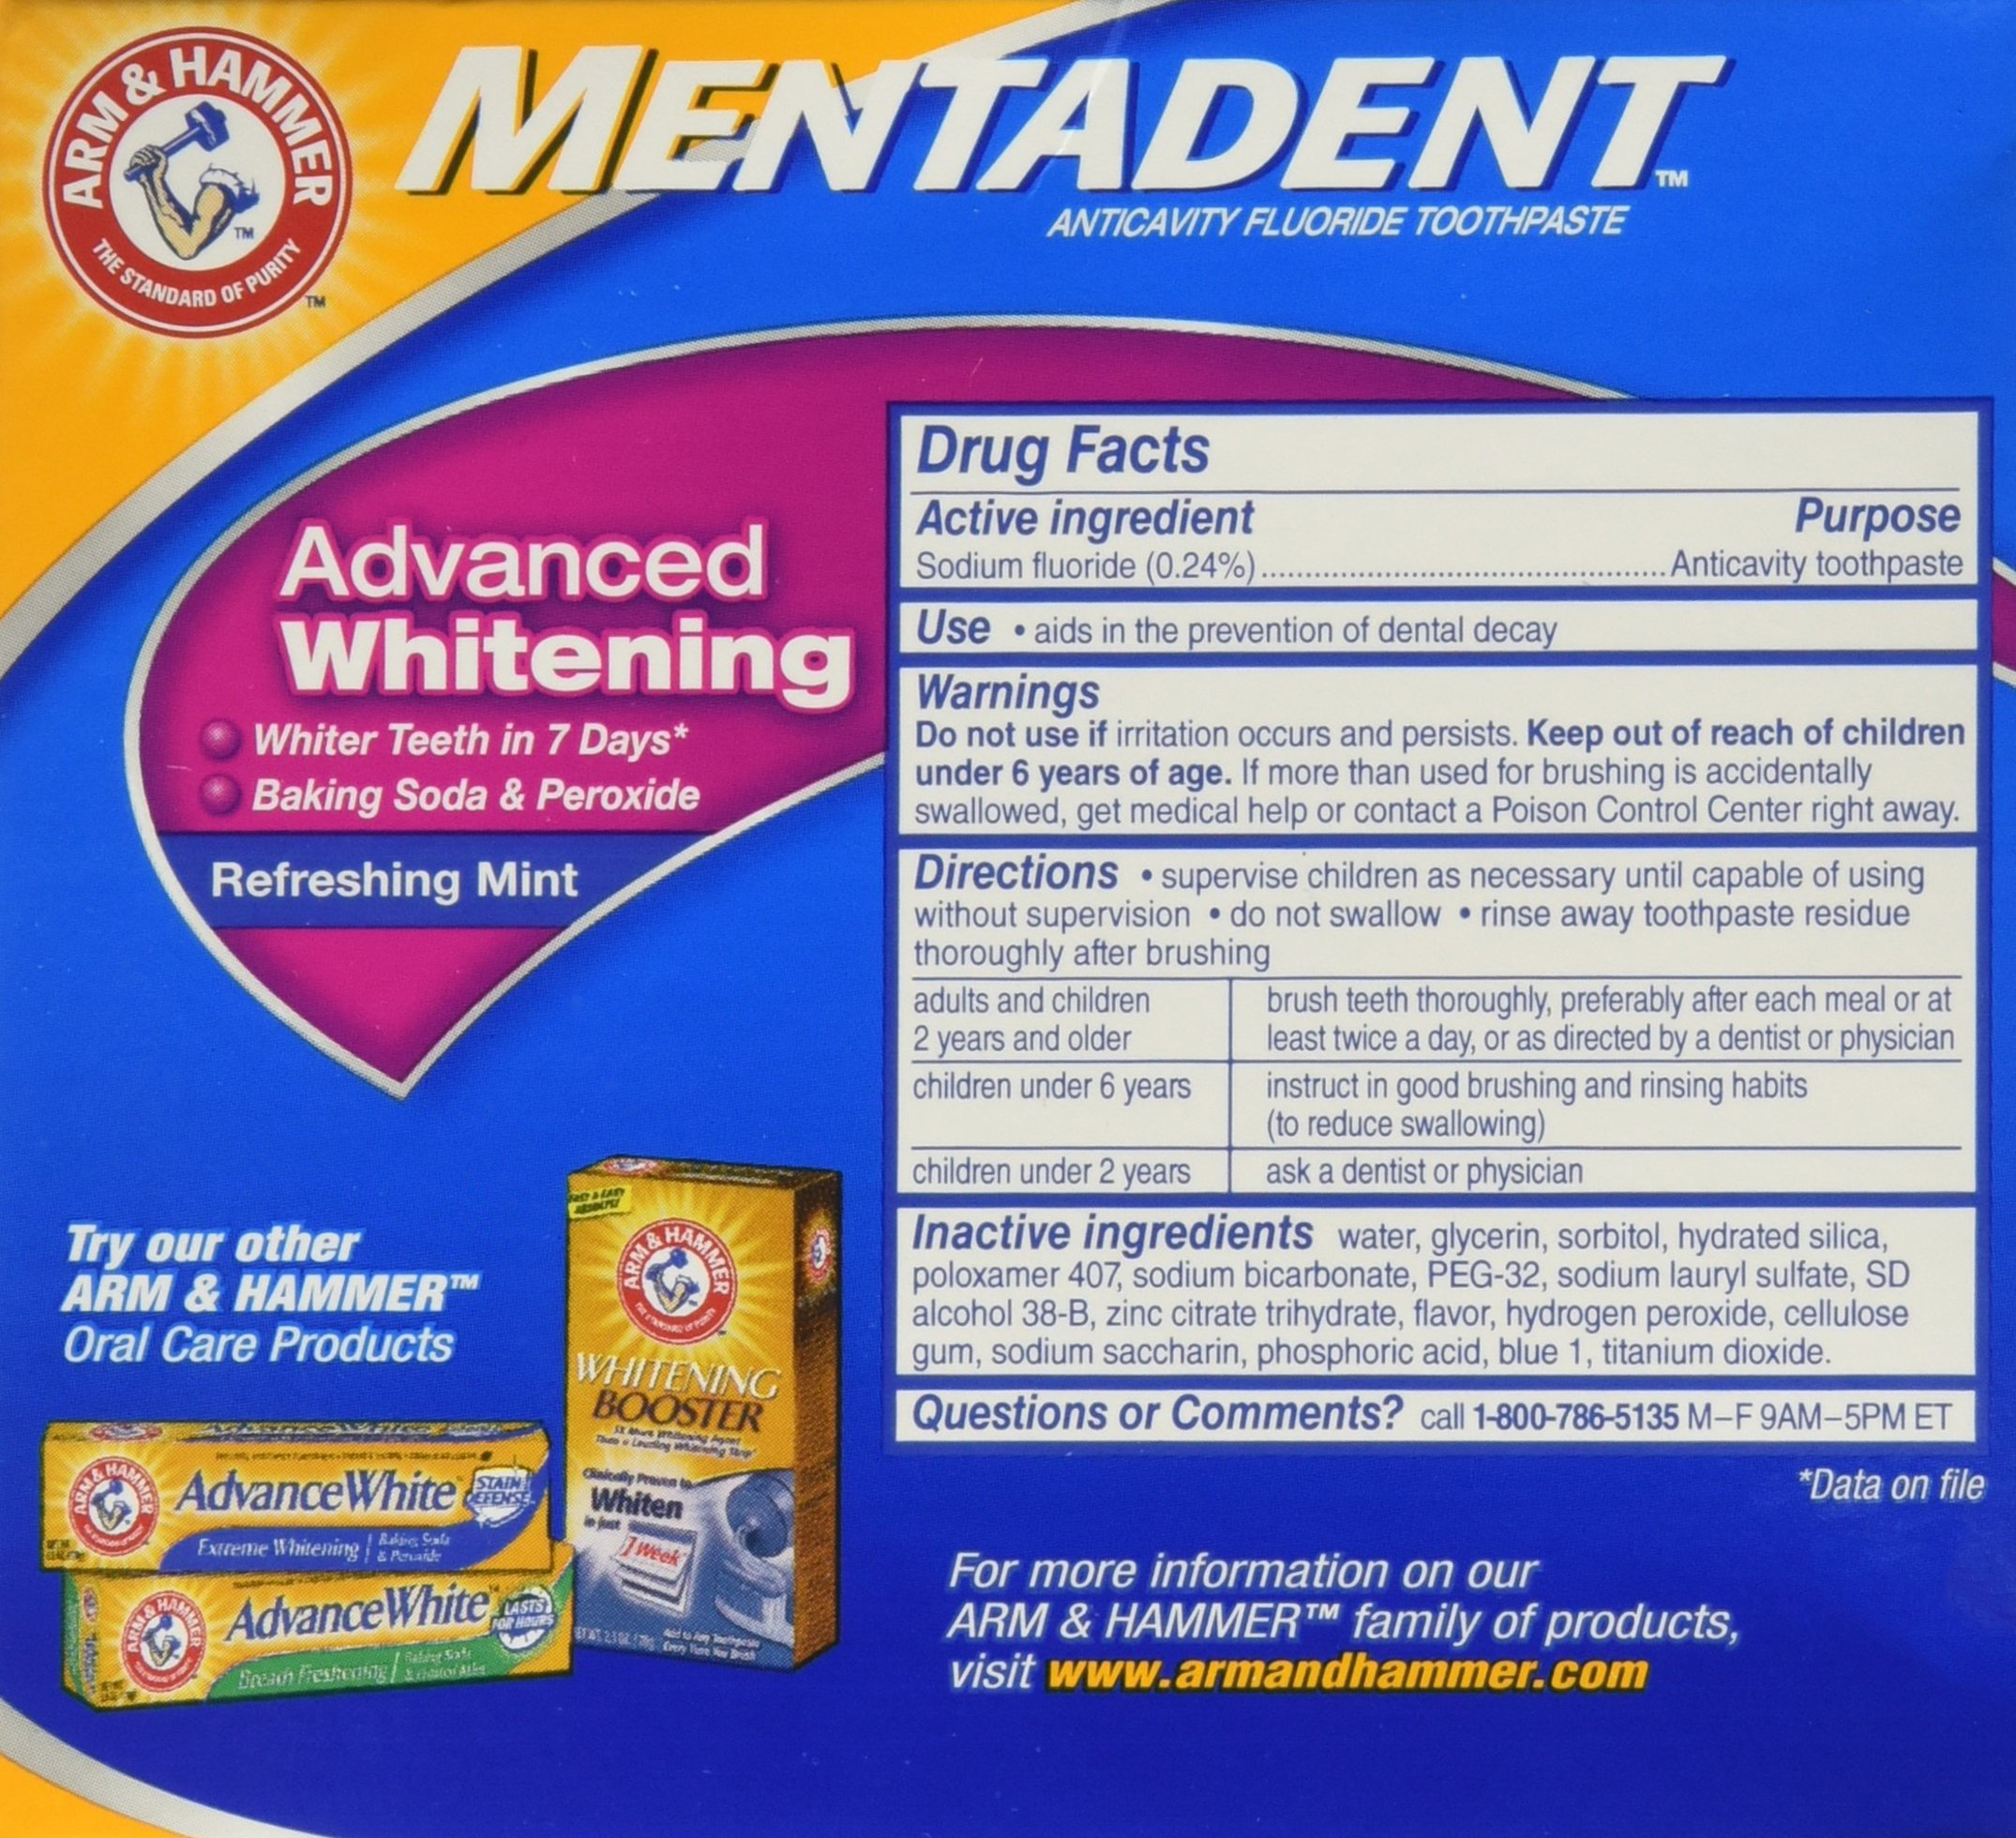 Arm & Hammer Mentadent Advanced Whitening Toothpaste, Twin Refills, 10.5 Ounce (2 pack) by Arm & Hammer (Image #5)